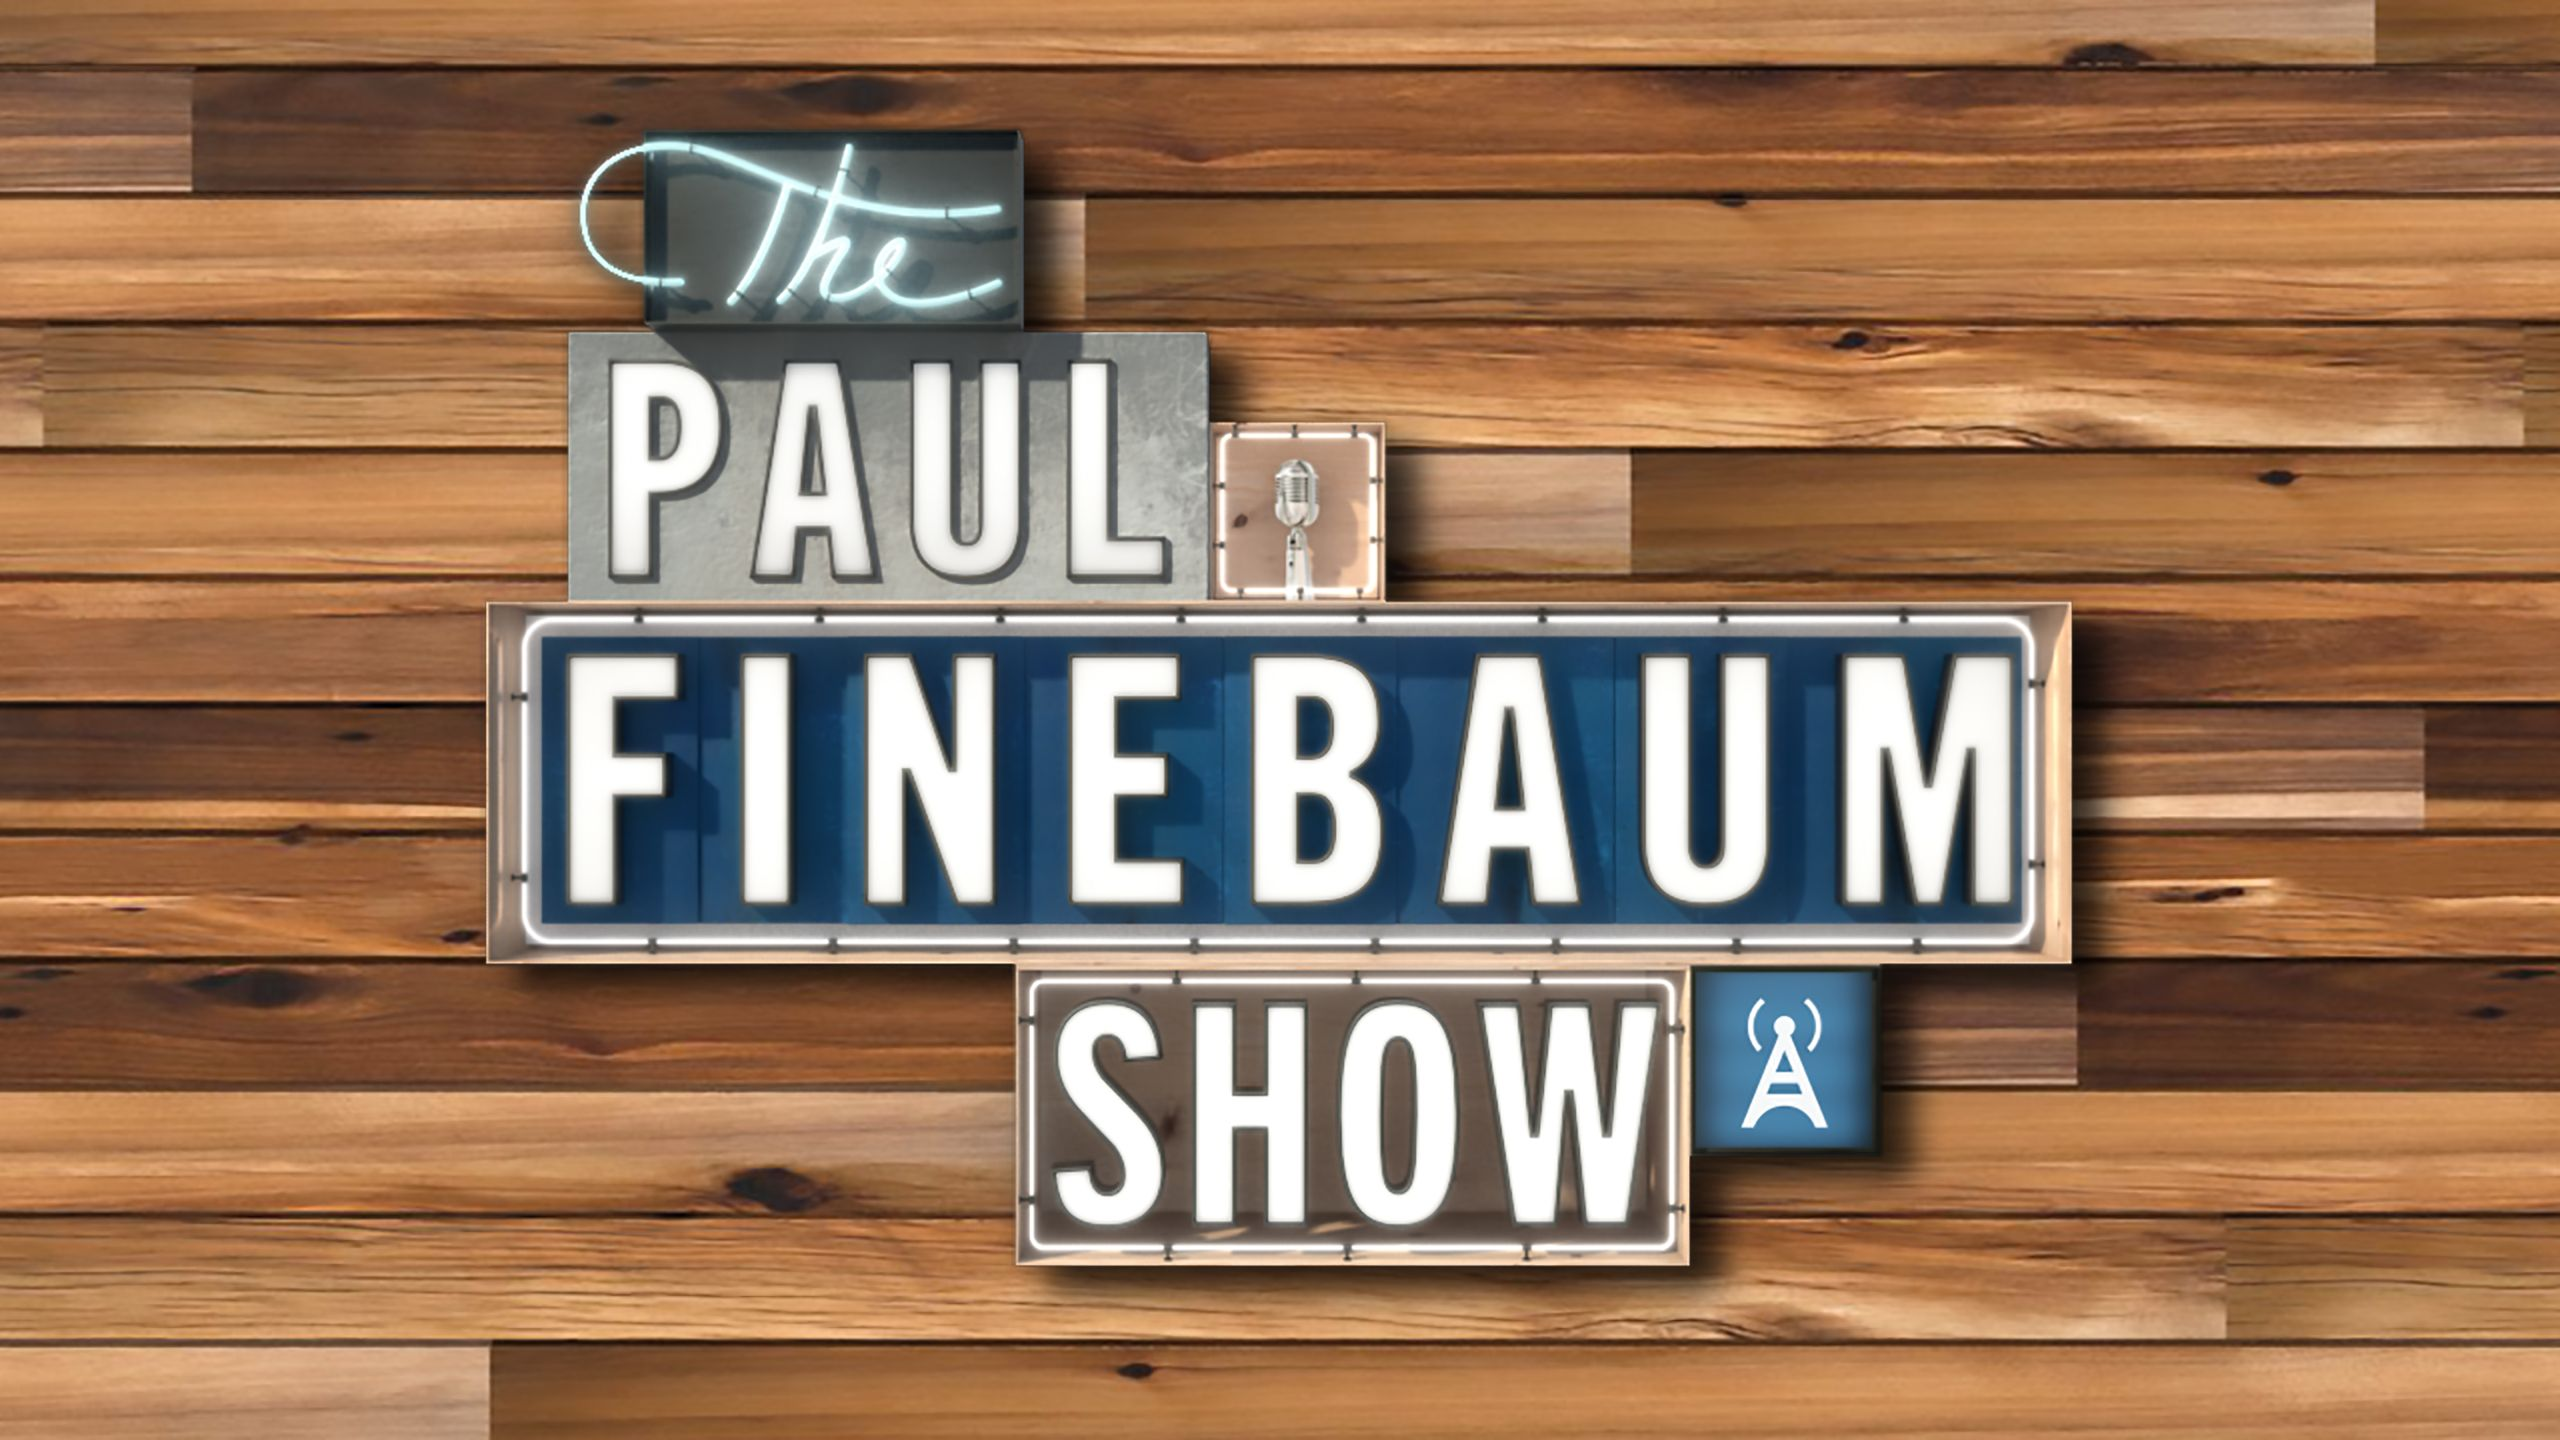 Mon, 1/22 - The Paul Finebaum Show